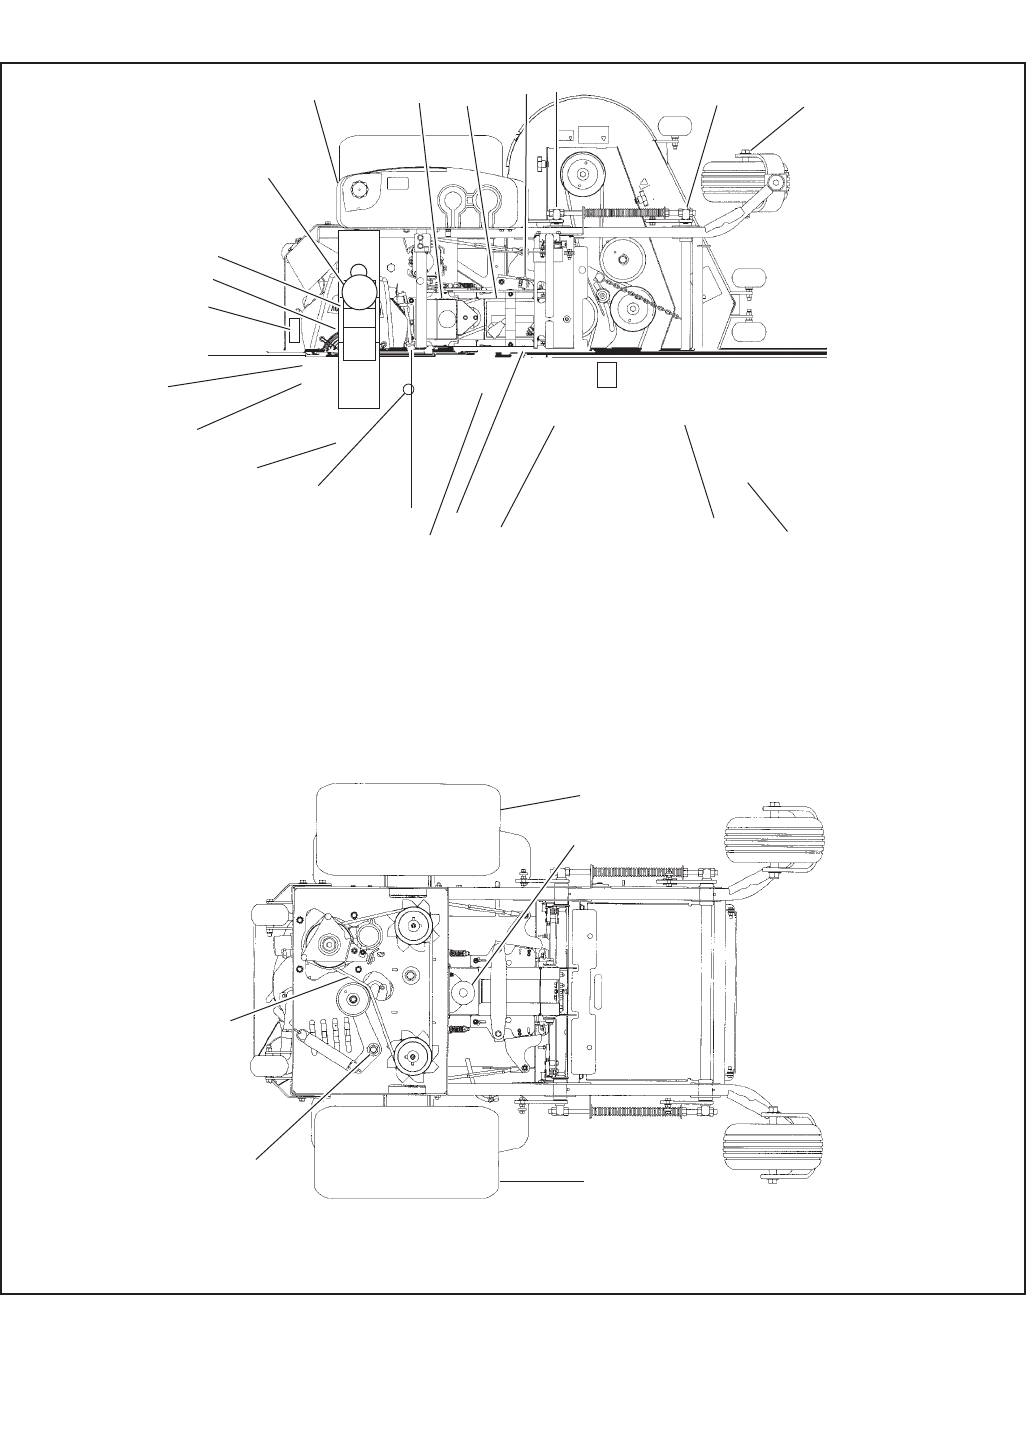 515289f2 b600 4d34 9096 c70021832d17 bg15 page 21 of hustler turf lawn mower hustler z user guide hustler fast track wiring diagram at reclaimingppi.co